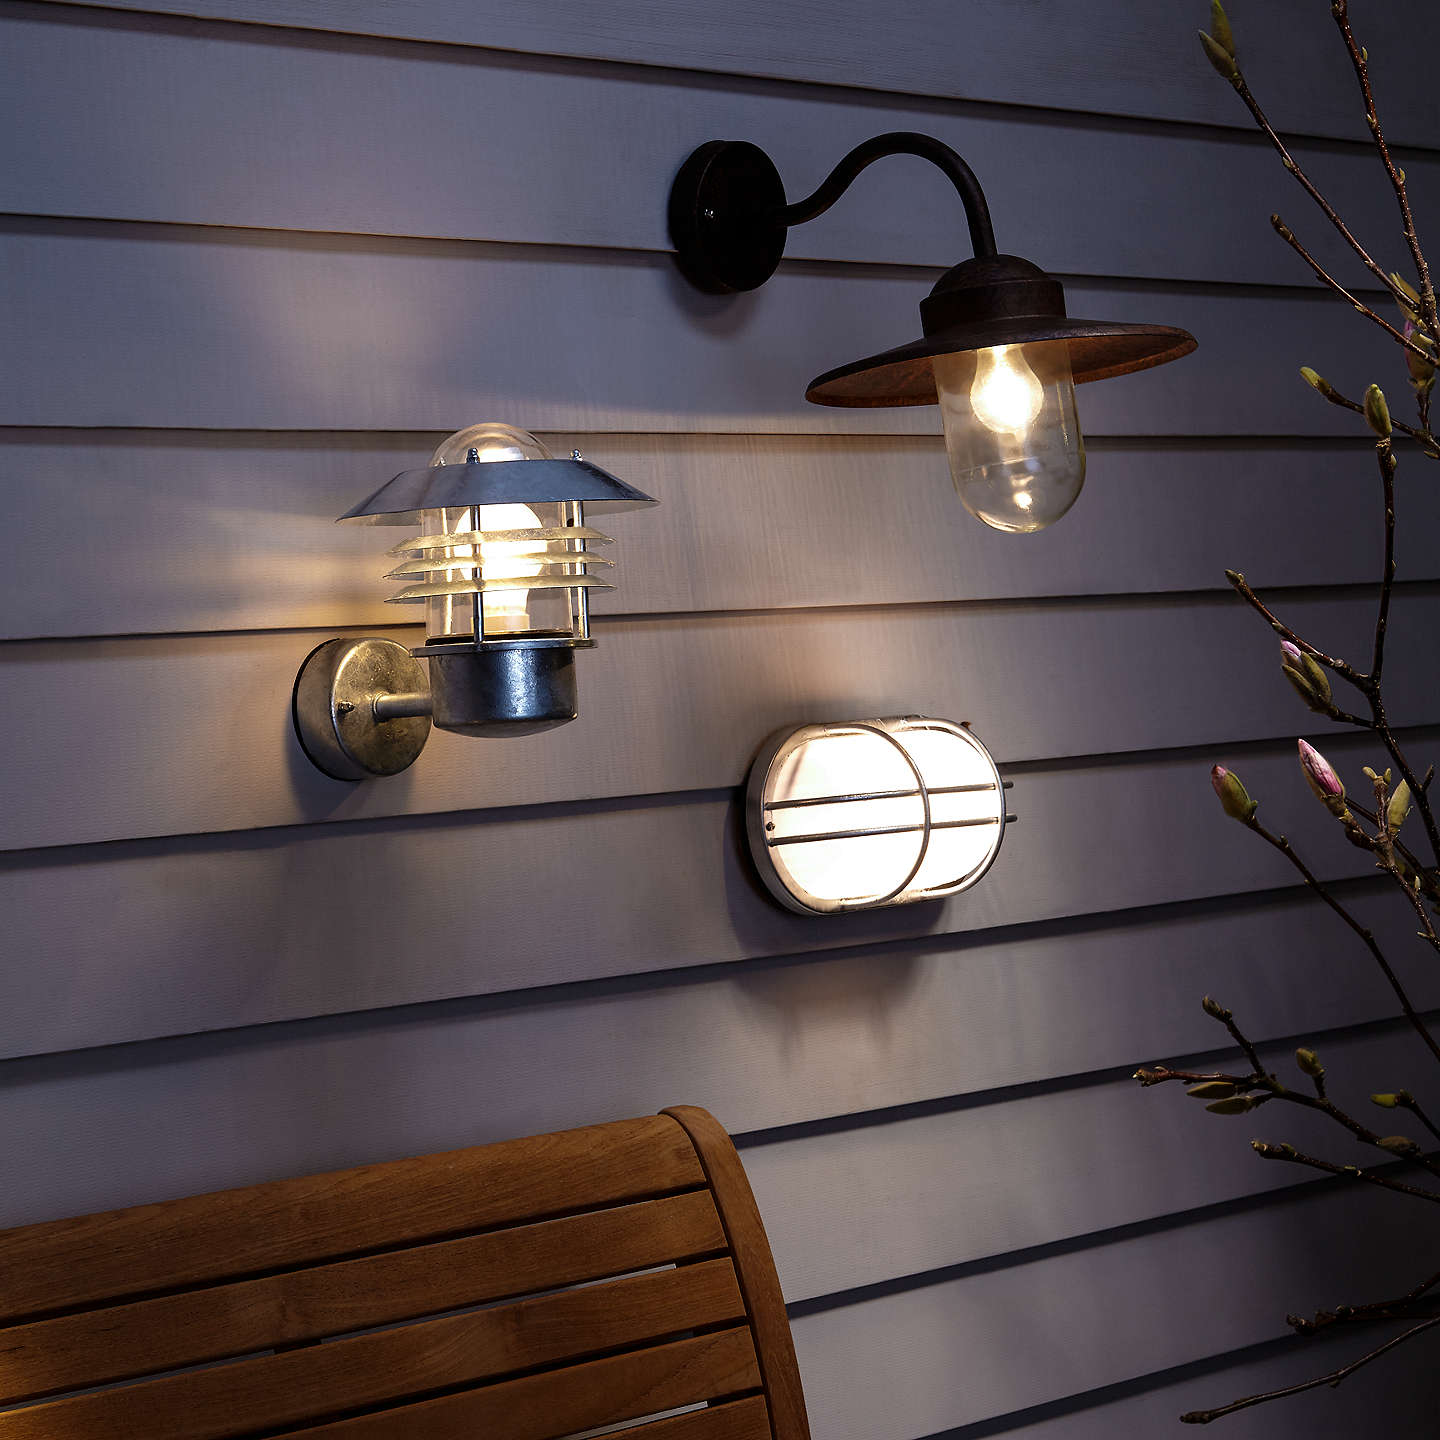 Outdoor Wall Lights John Lewis: Nordlux Vejers Outdoor Wall Light, Galvanised Steel At